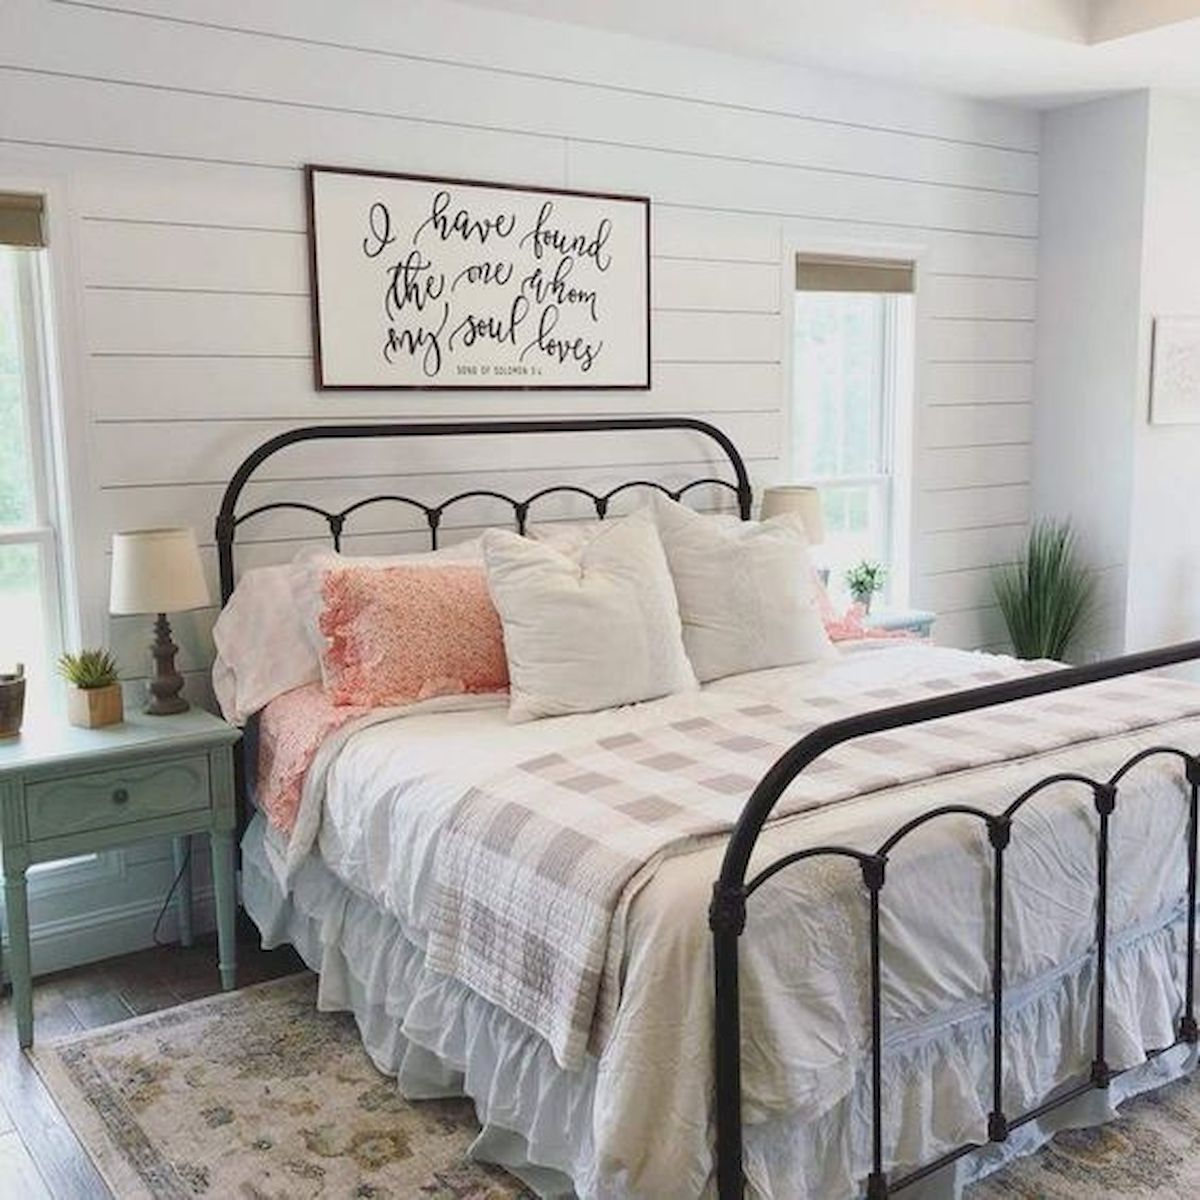 47 Most Popular Bedding for Farmhouse Bedroom Design Ideas and Decor (20)